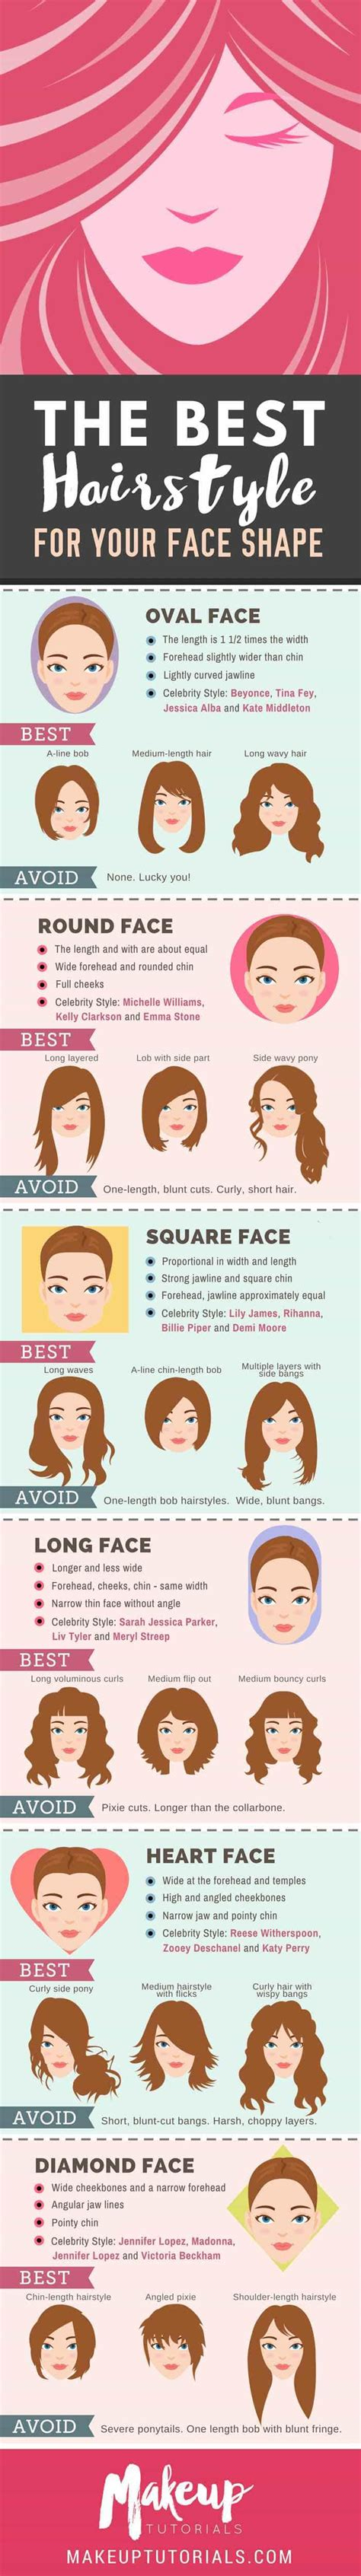 haircut face shape guide the ultimate hairstyle guide for your face shape makeup